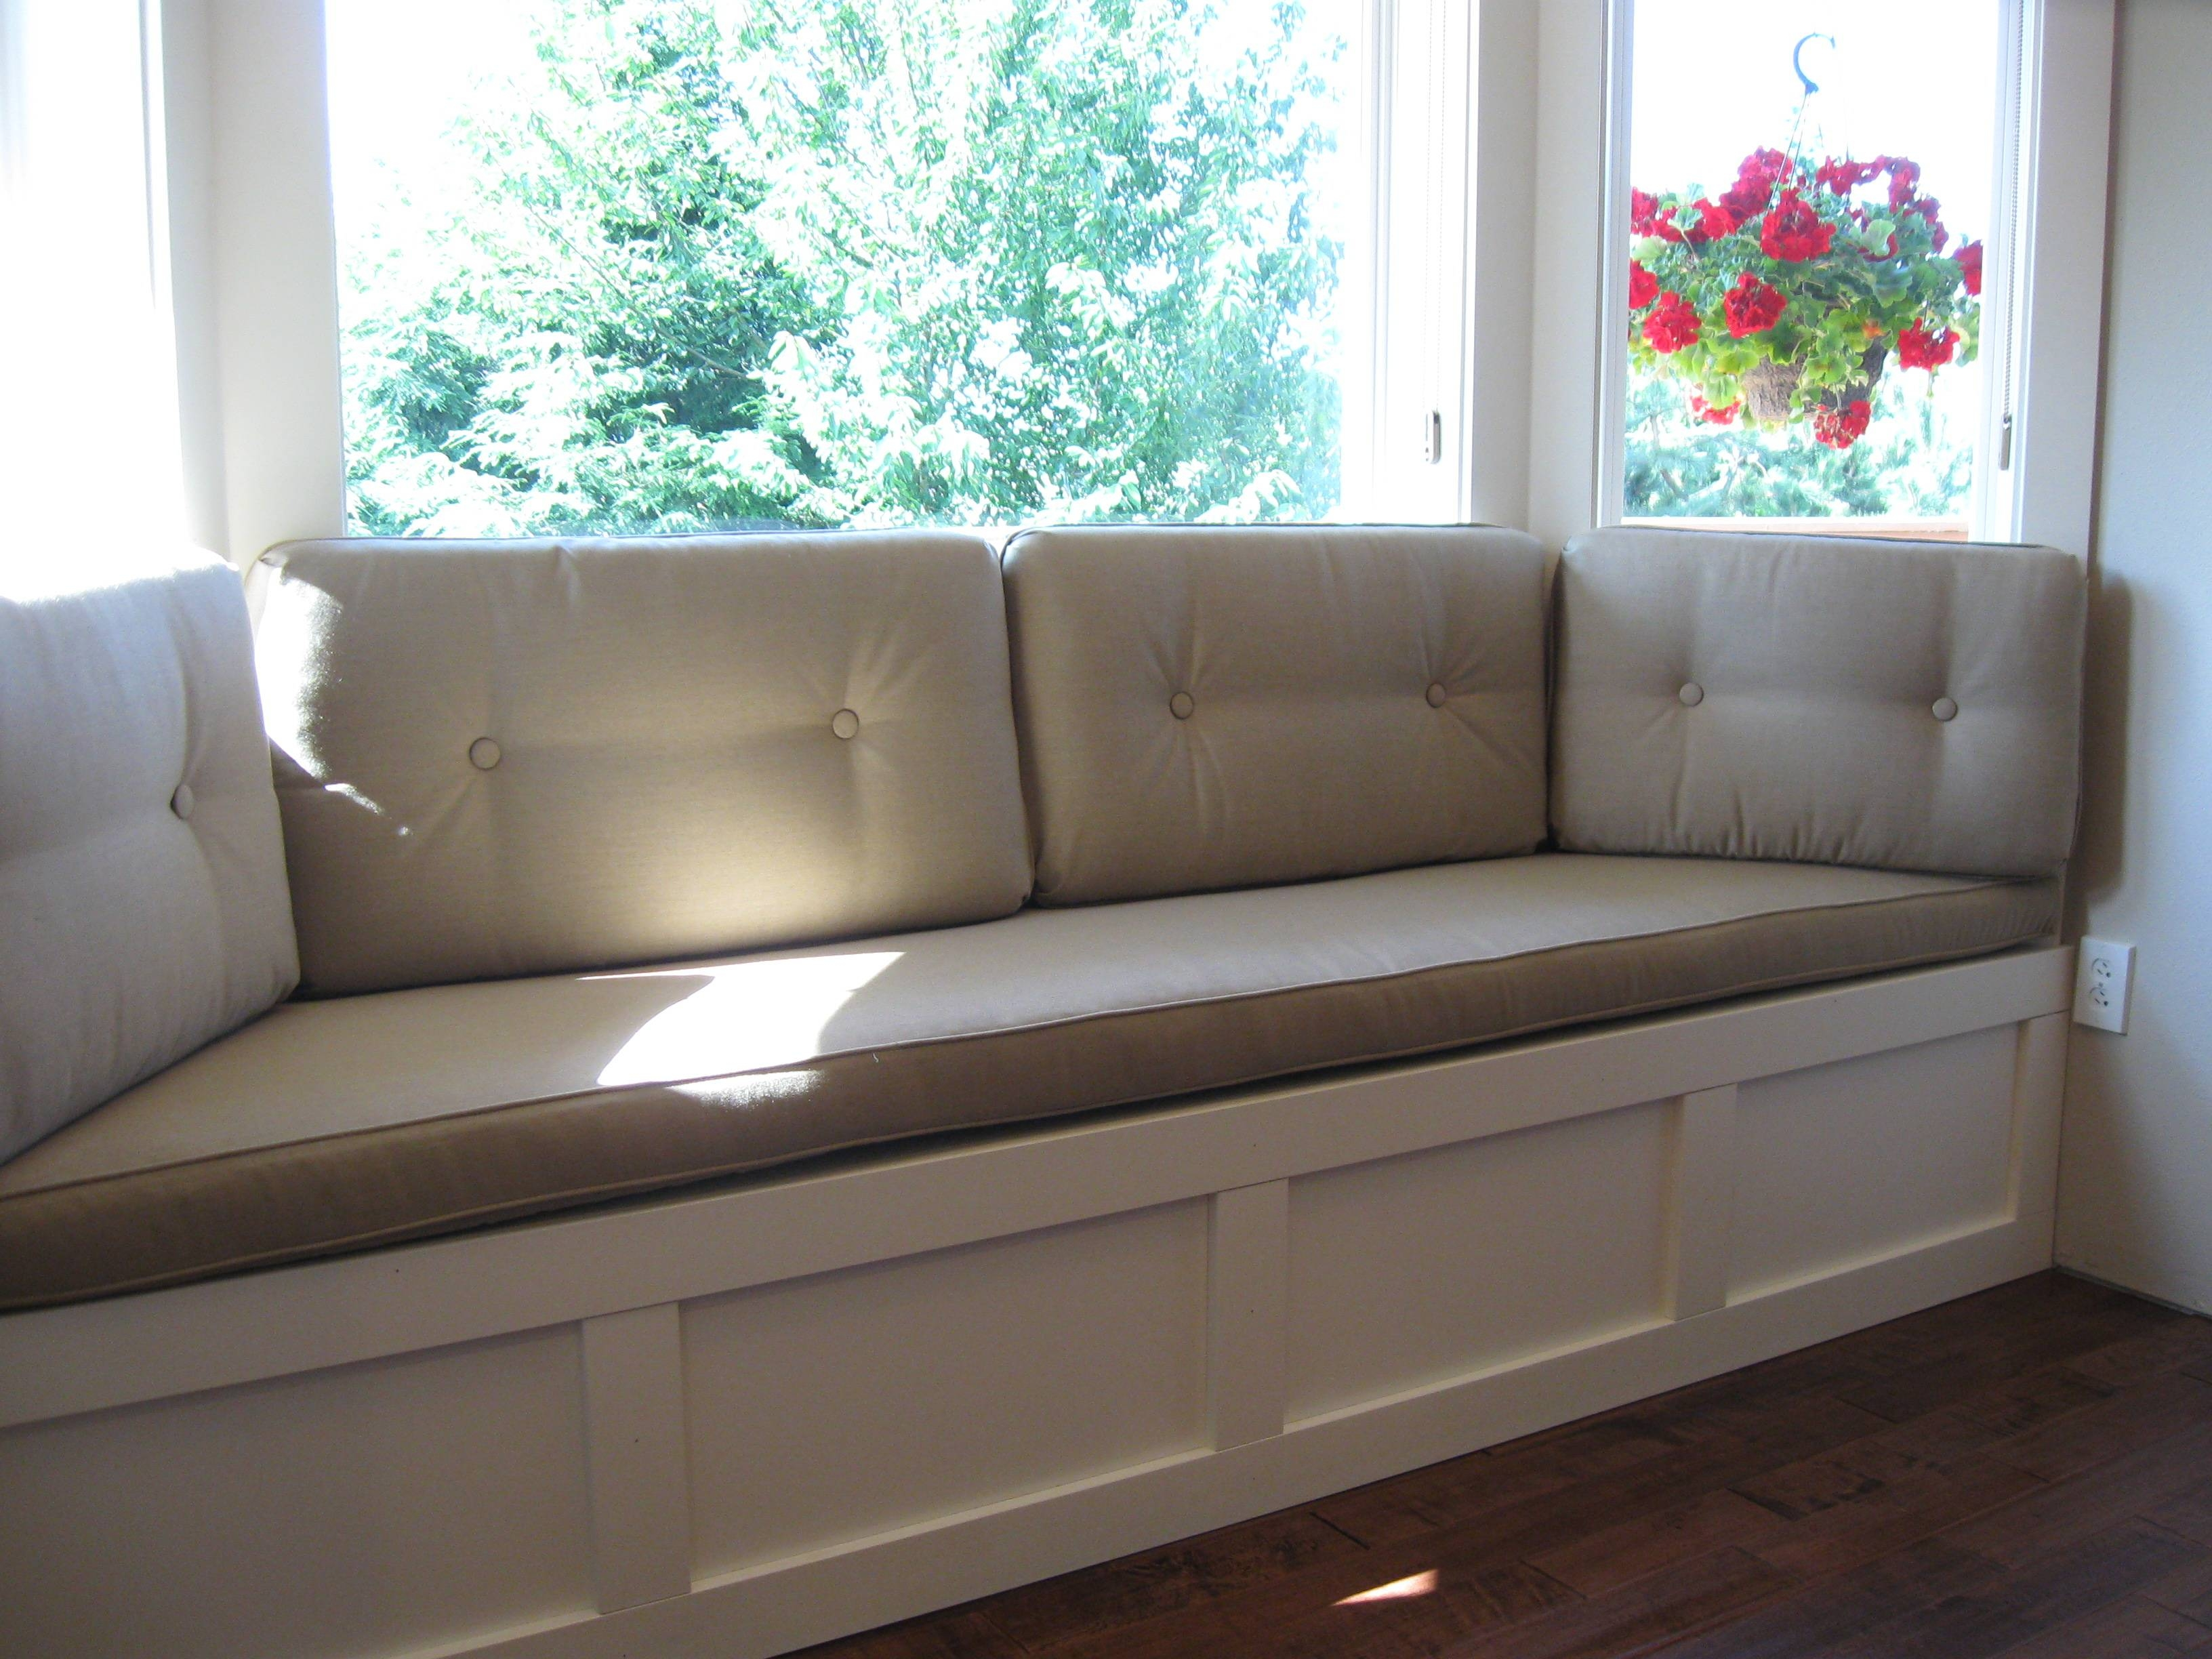 Top 15 of Sofas for Bay Window